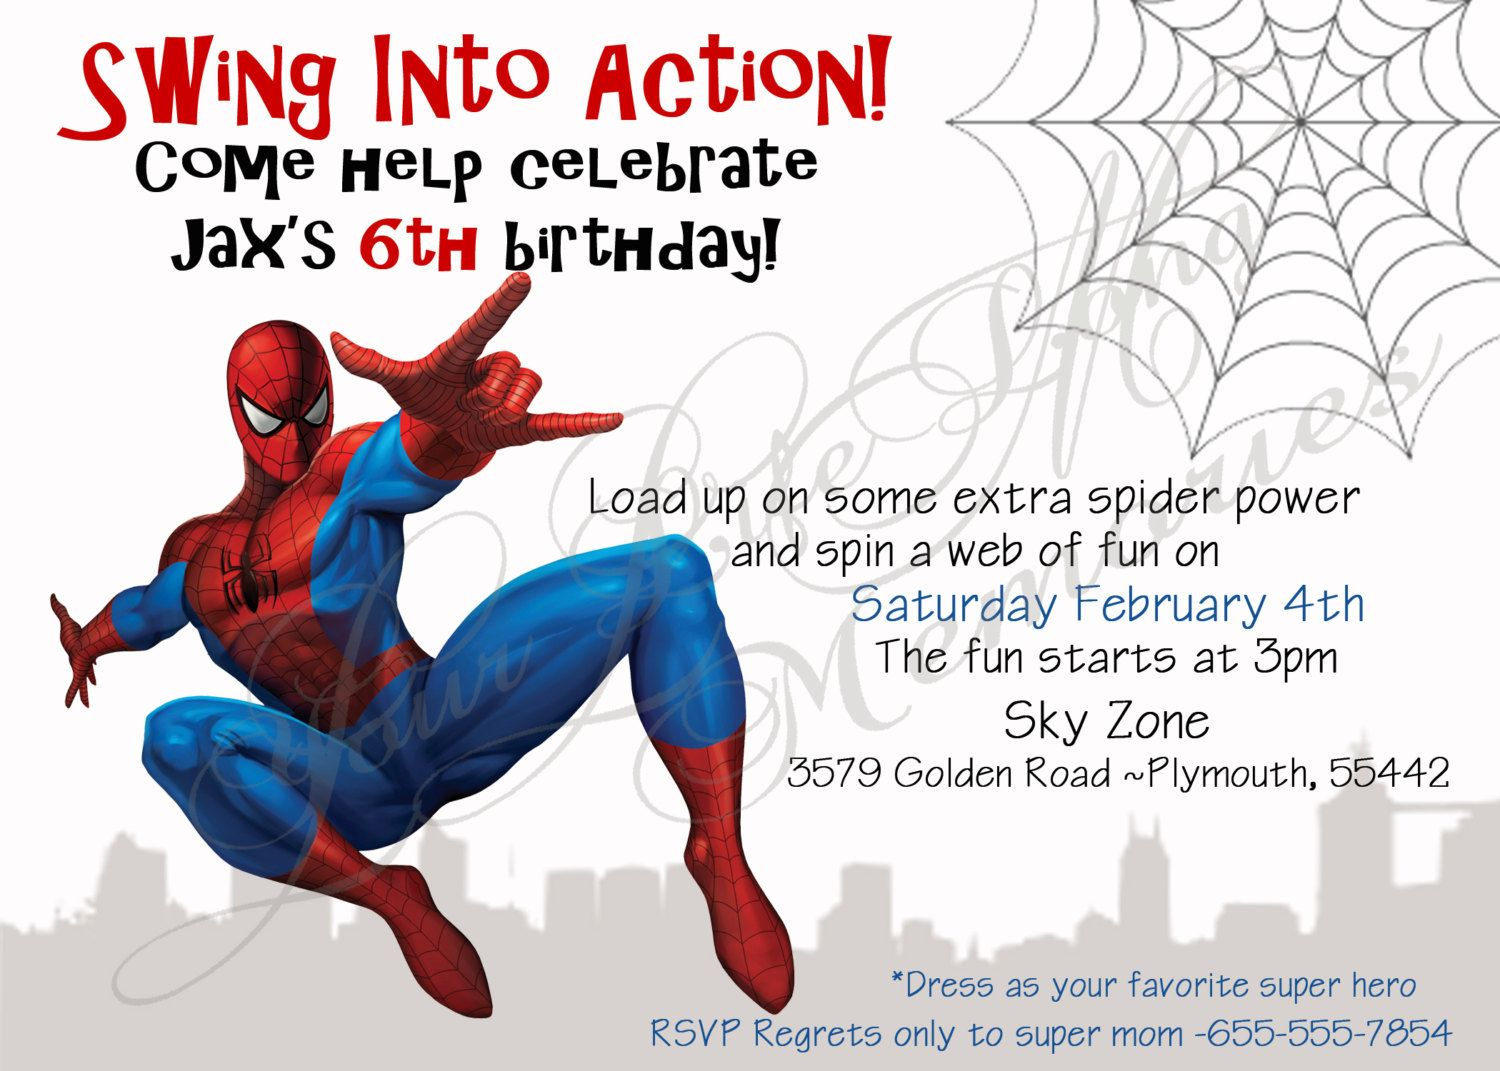 image regarding Printable Spiderman Invitations identified as Spiderman Birthday Invites No cost Printable Spiderman